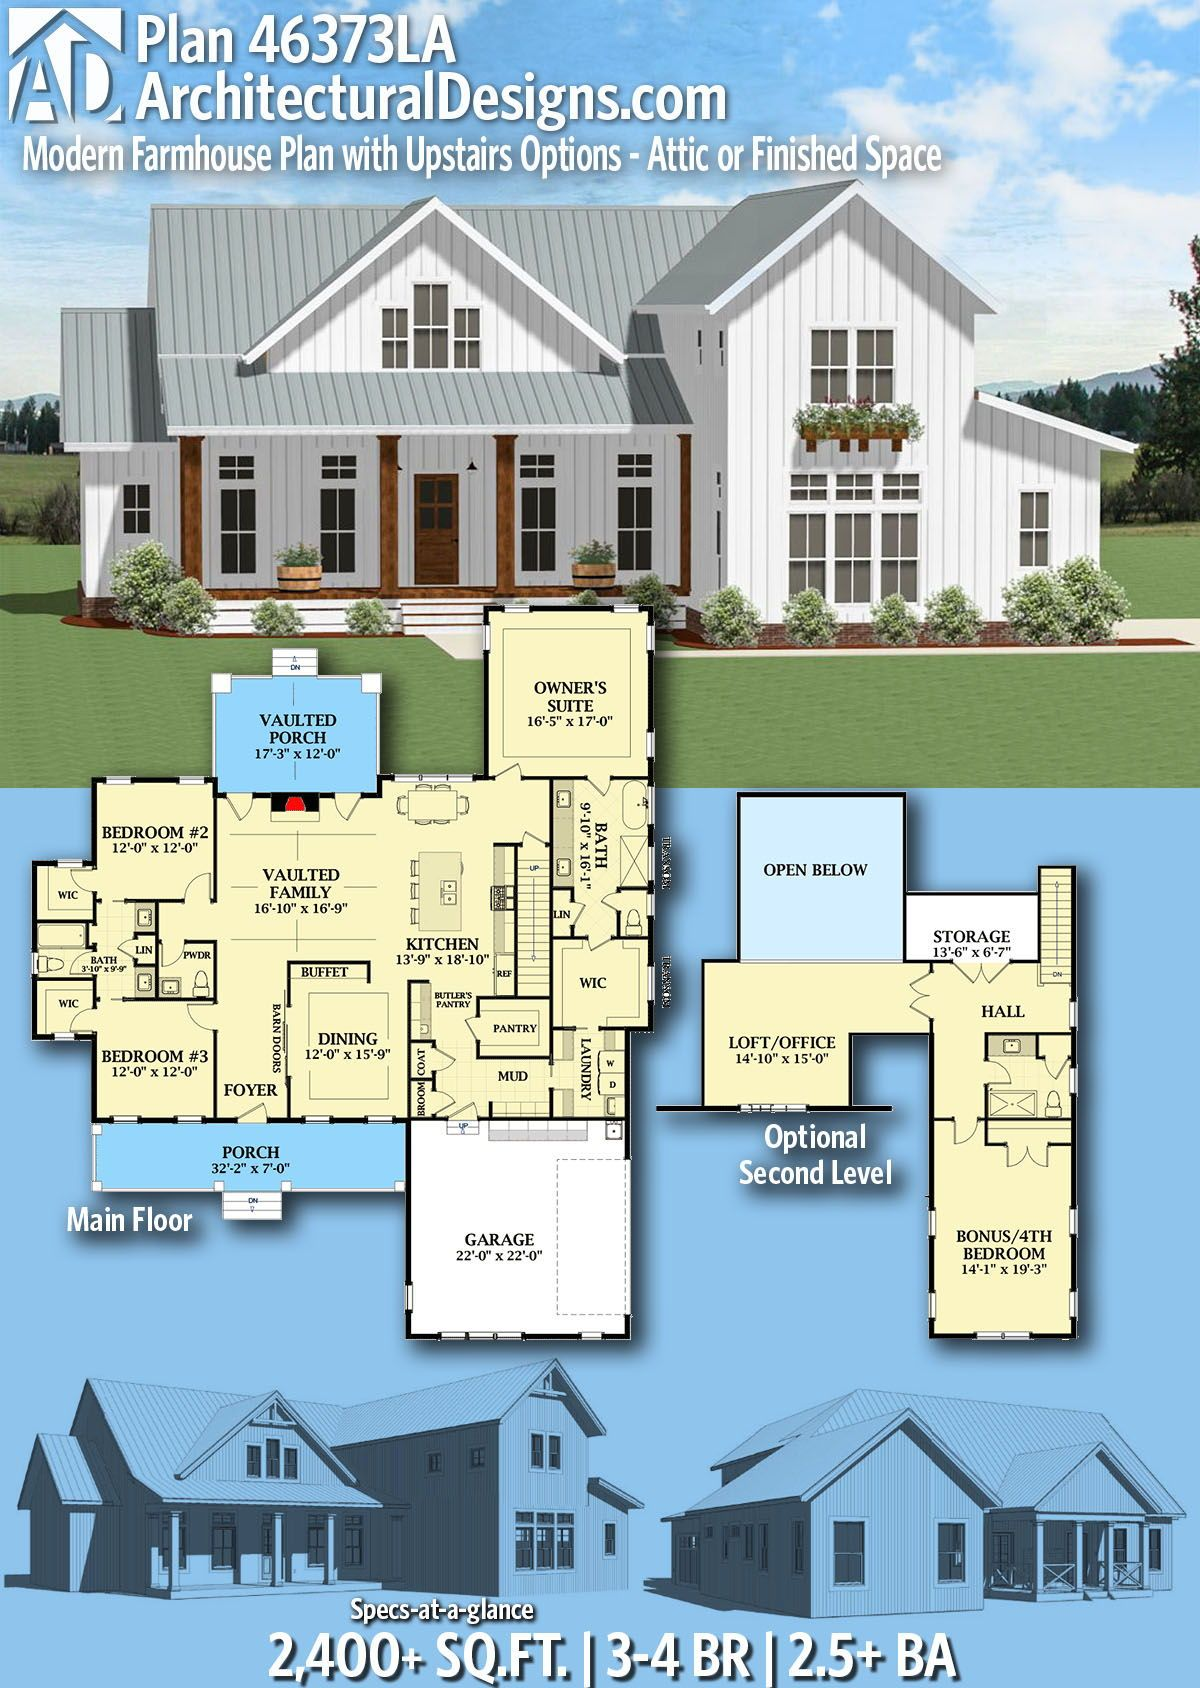 Plan 46373la Modern Farmhouse Plan With Upstairs Options Attic Or Finished Space Farmhouse Plans Modern Farmhouse Plans House Plans Farmhouse